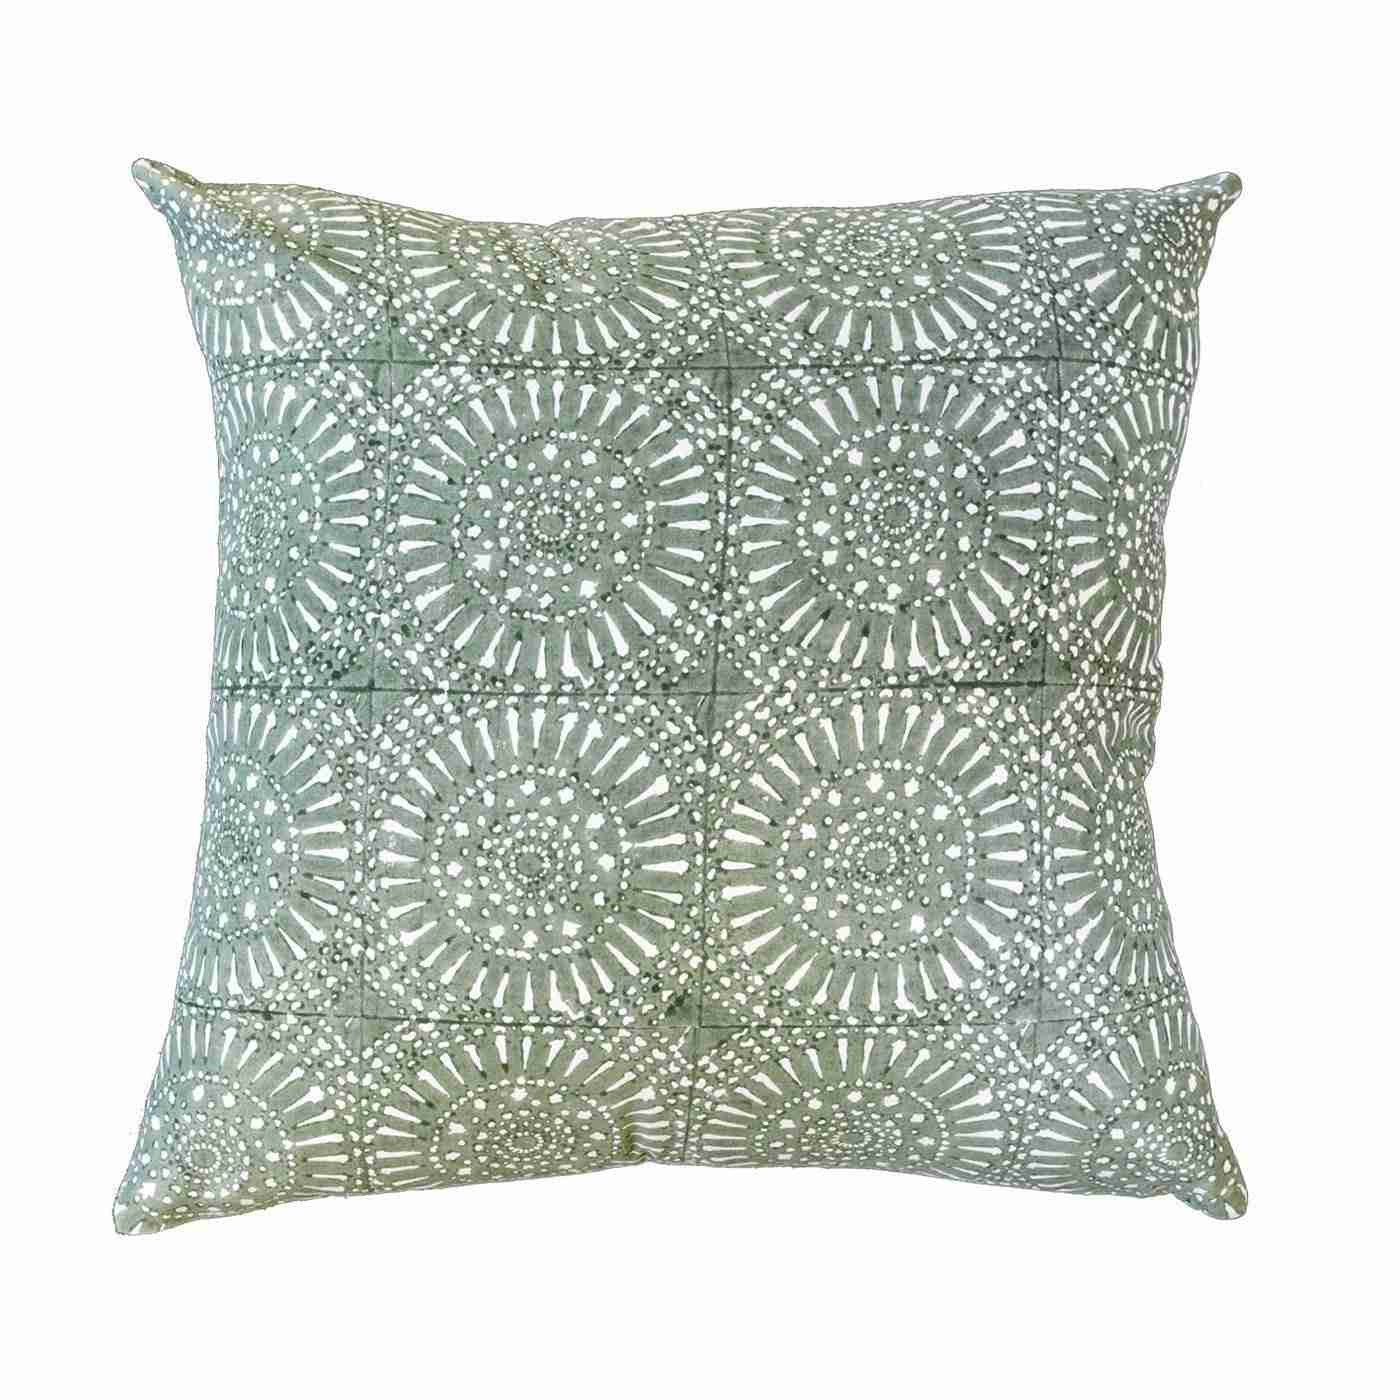 Sphere Print Celladon Medium Cushion 50cm x 50cm